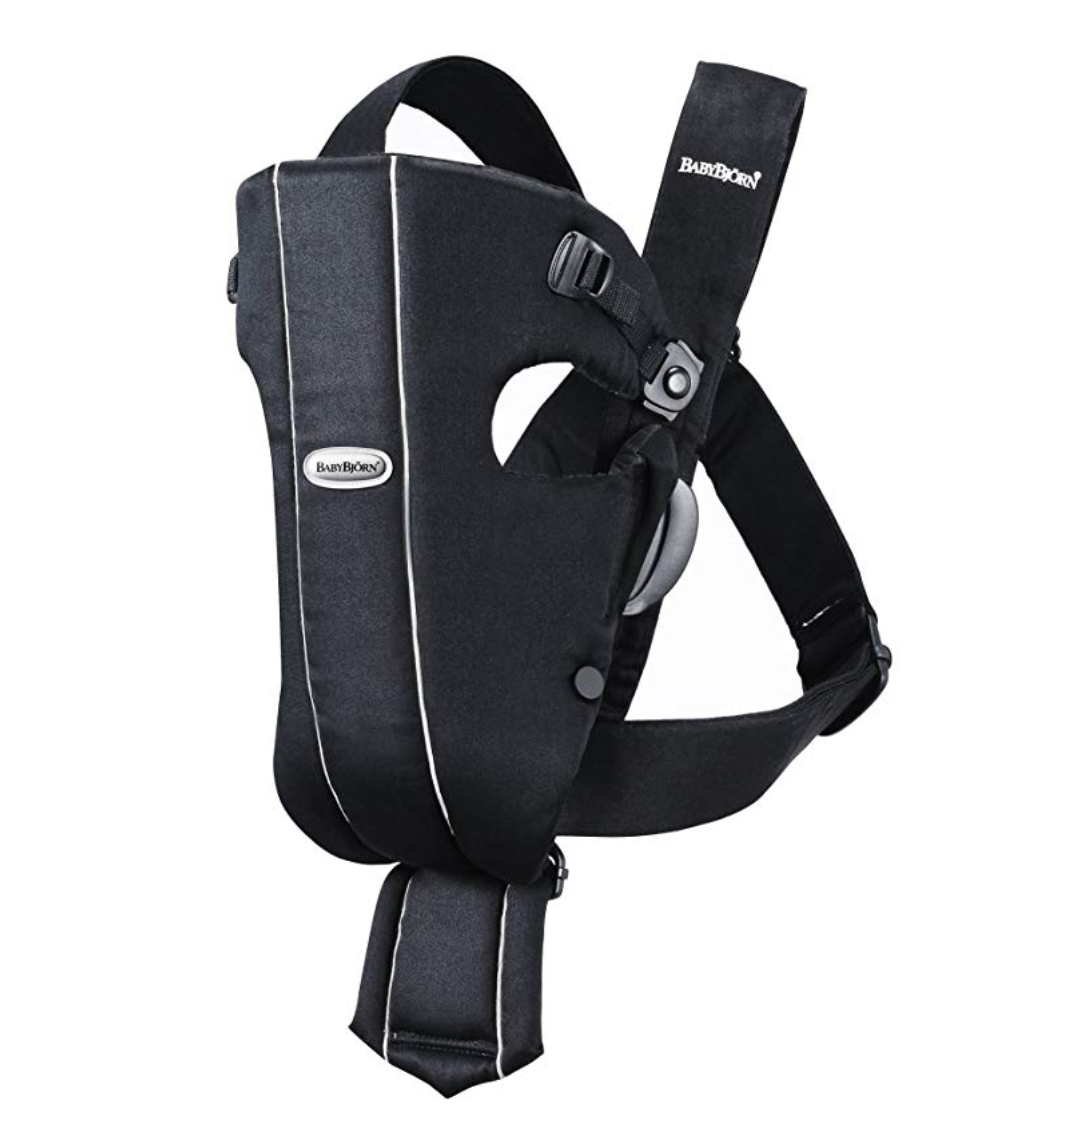 BabyBjörn Baby Carrier - 5 Best Baby Carriers To Keep Baby Secure